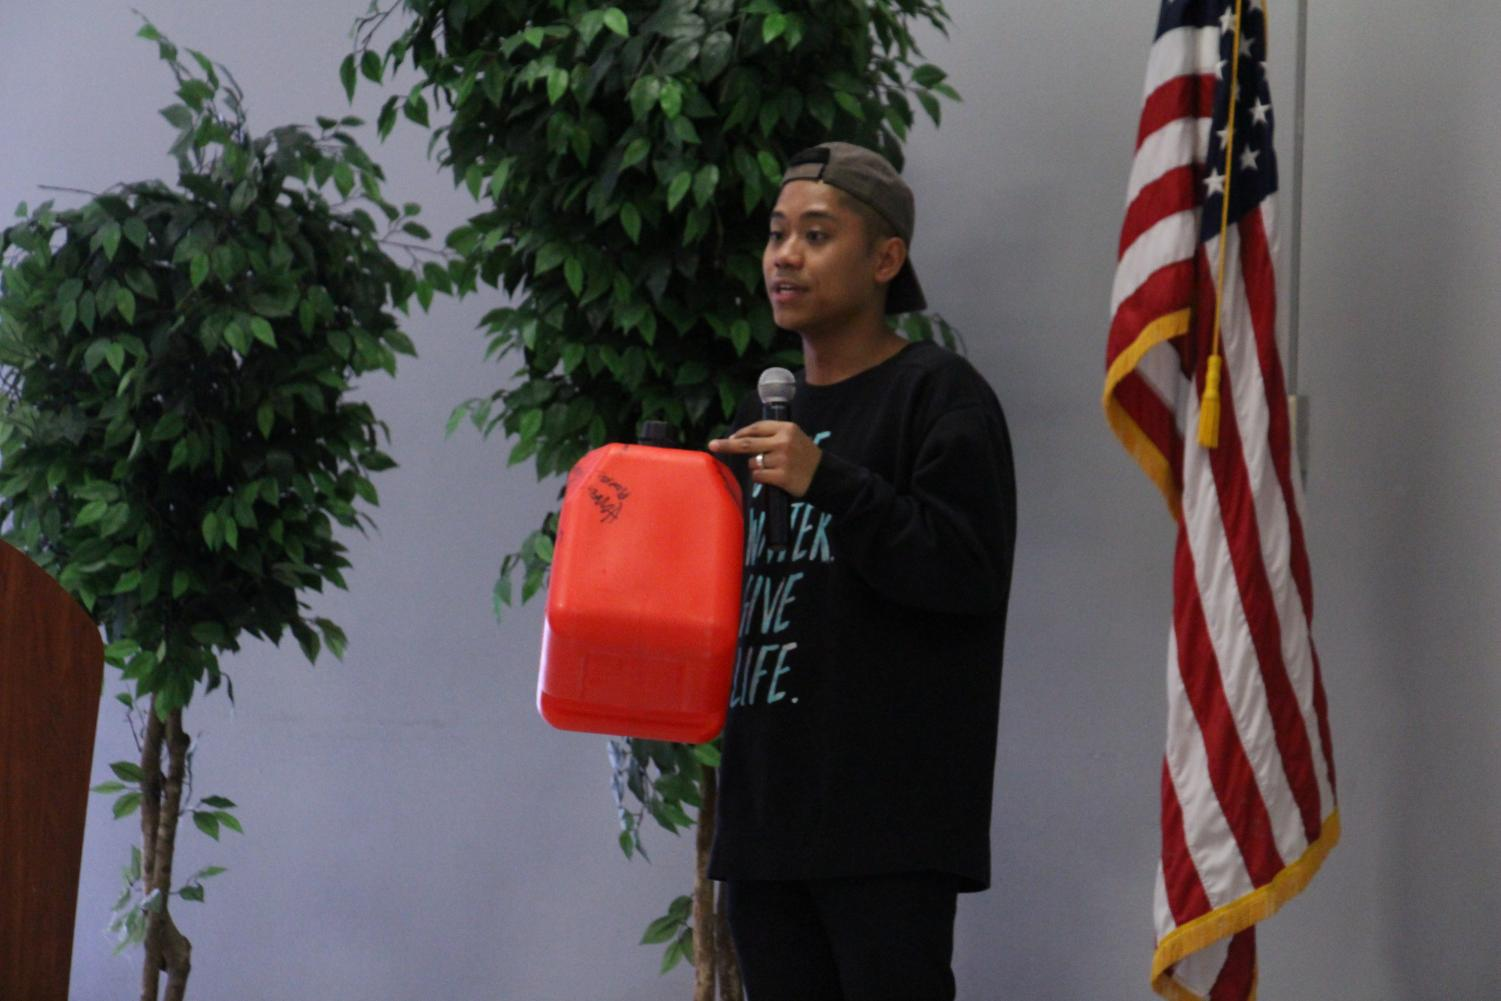 Roel Romualdo, former intern and member of the CSU Bakersfield Thirst Project Club, demonstrates how limiting it can be for communities to access clean water in the Student Union Multi-Purpose Room on March 21.  Leo Garcia/The Runner